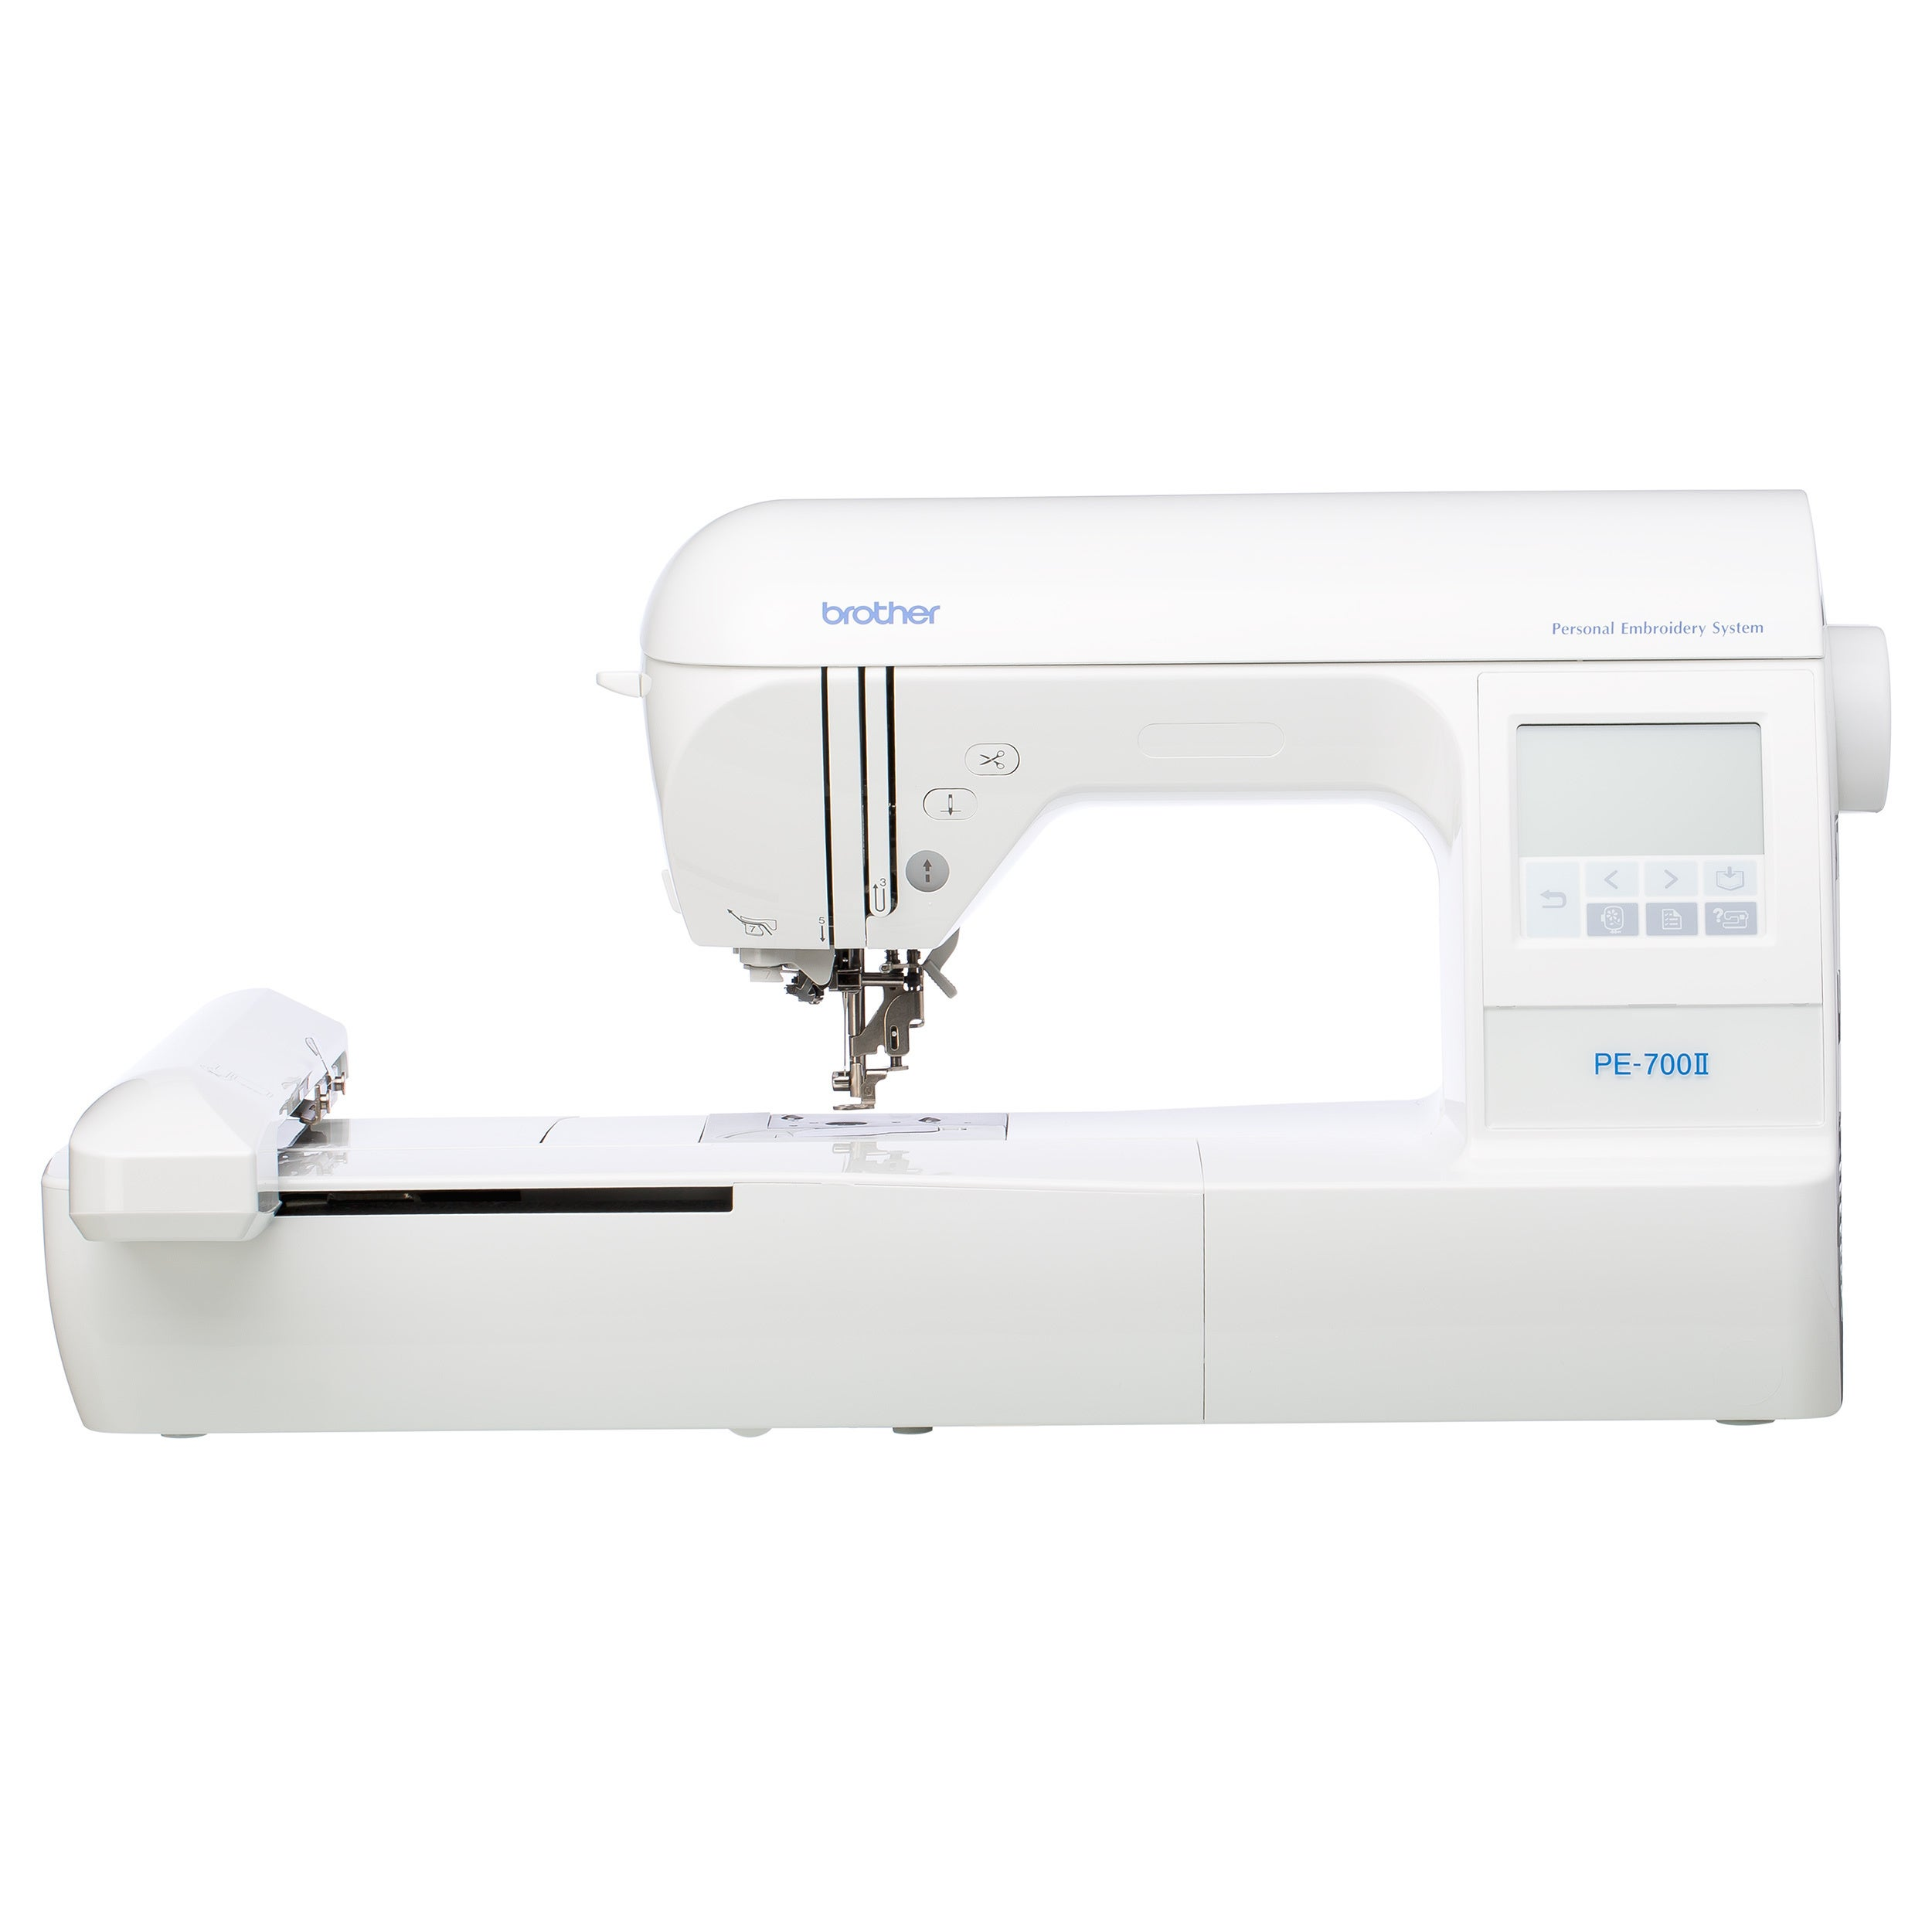 4 Hoops for Brother 5x7 PE700 Embroidery Machine